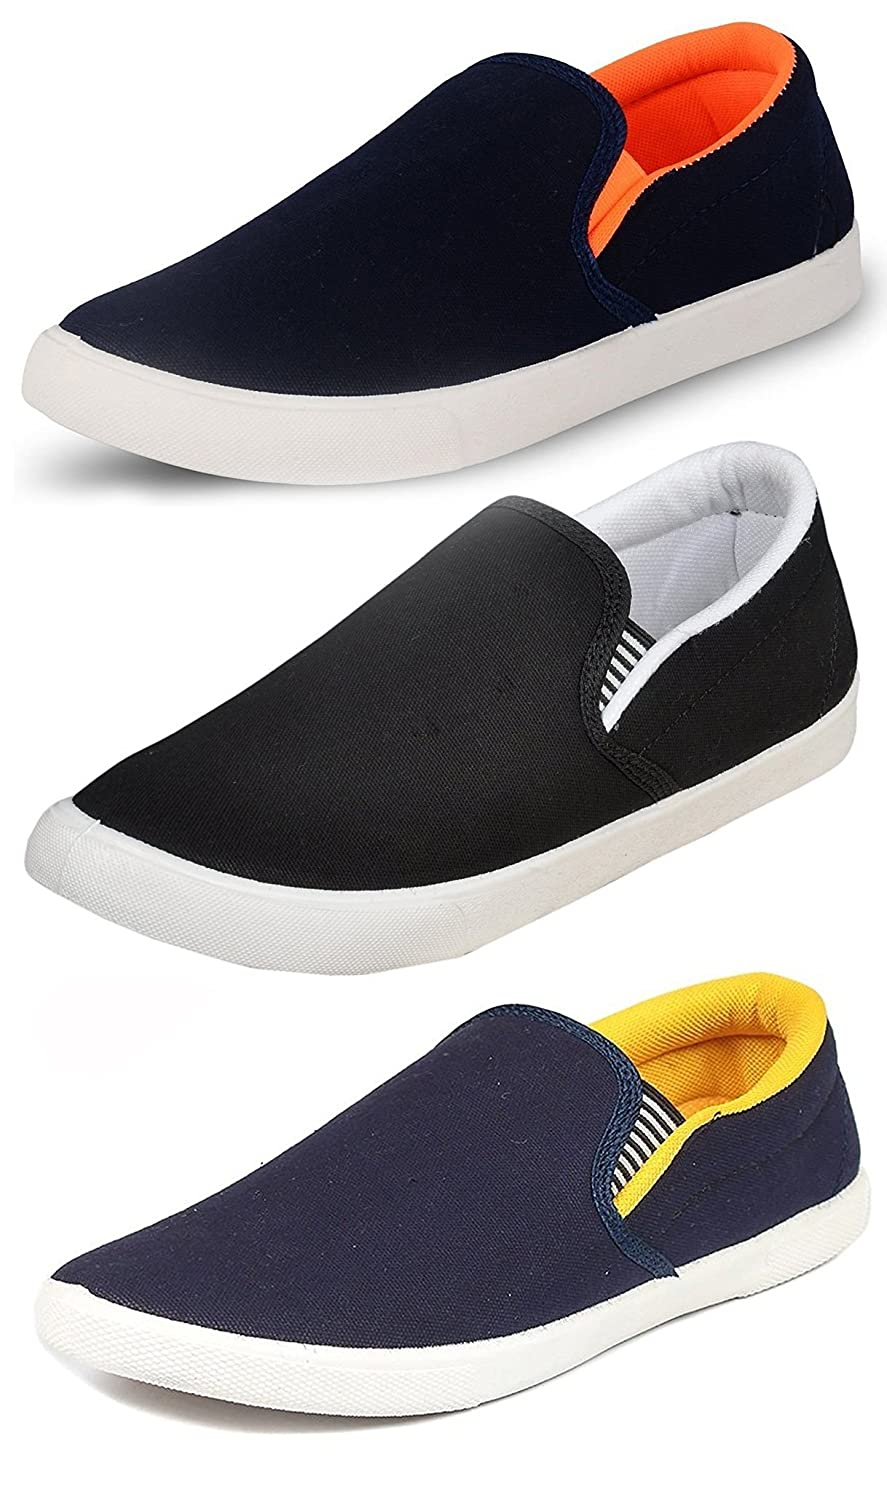 Chevit Men's Trio Pack of 3 Casual Shoes in Various...